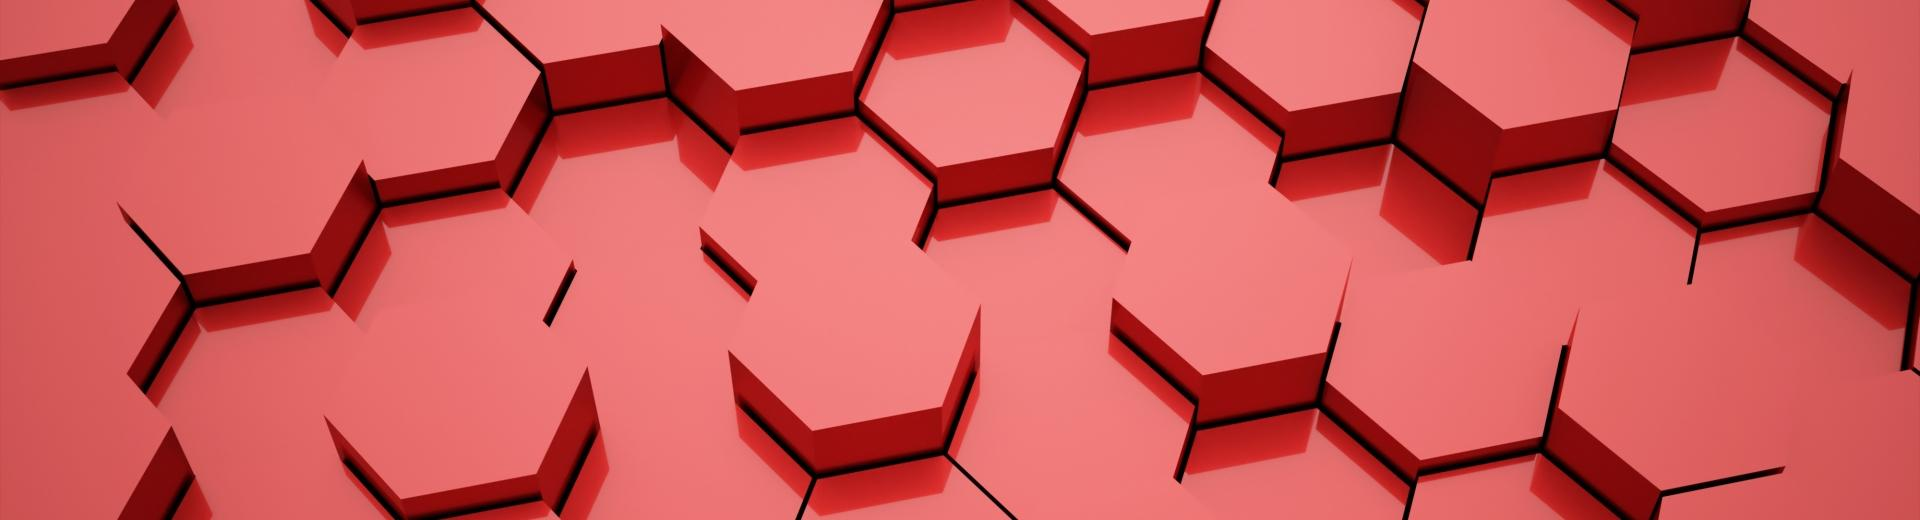 A group of hexagonal red blocks